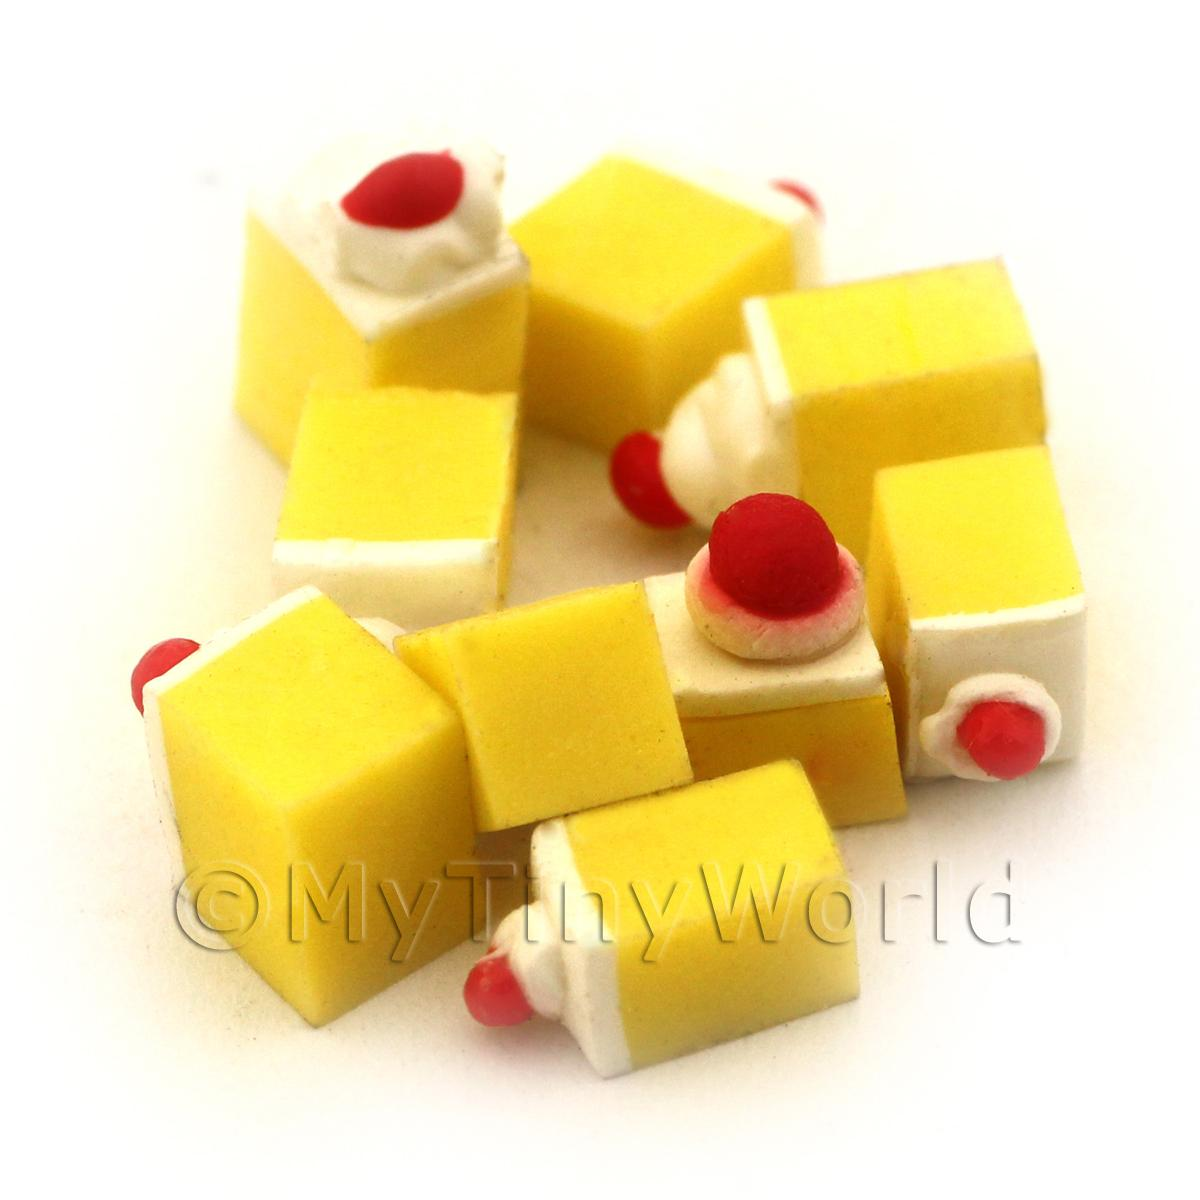 Dolls House Miniature Lemon Square Topped With Cream And A Cherry